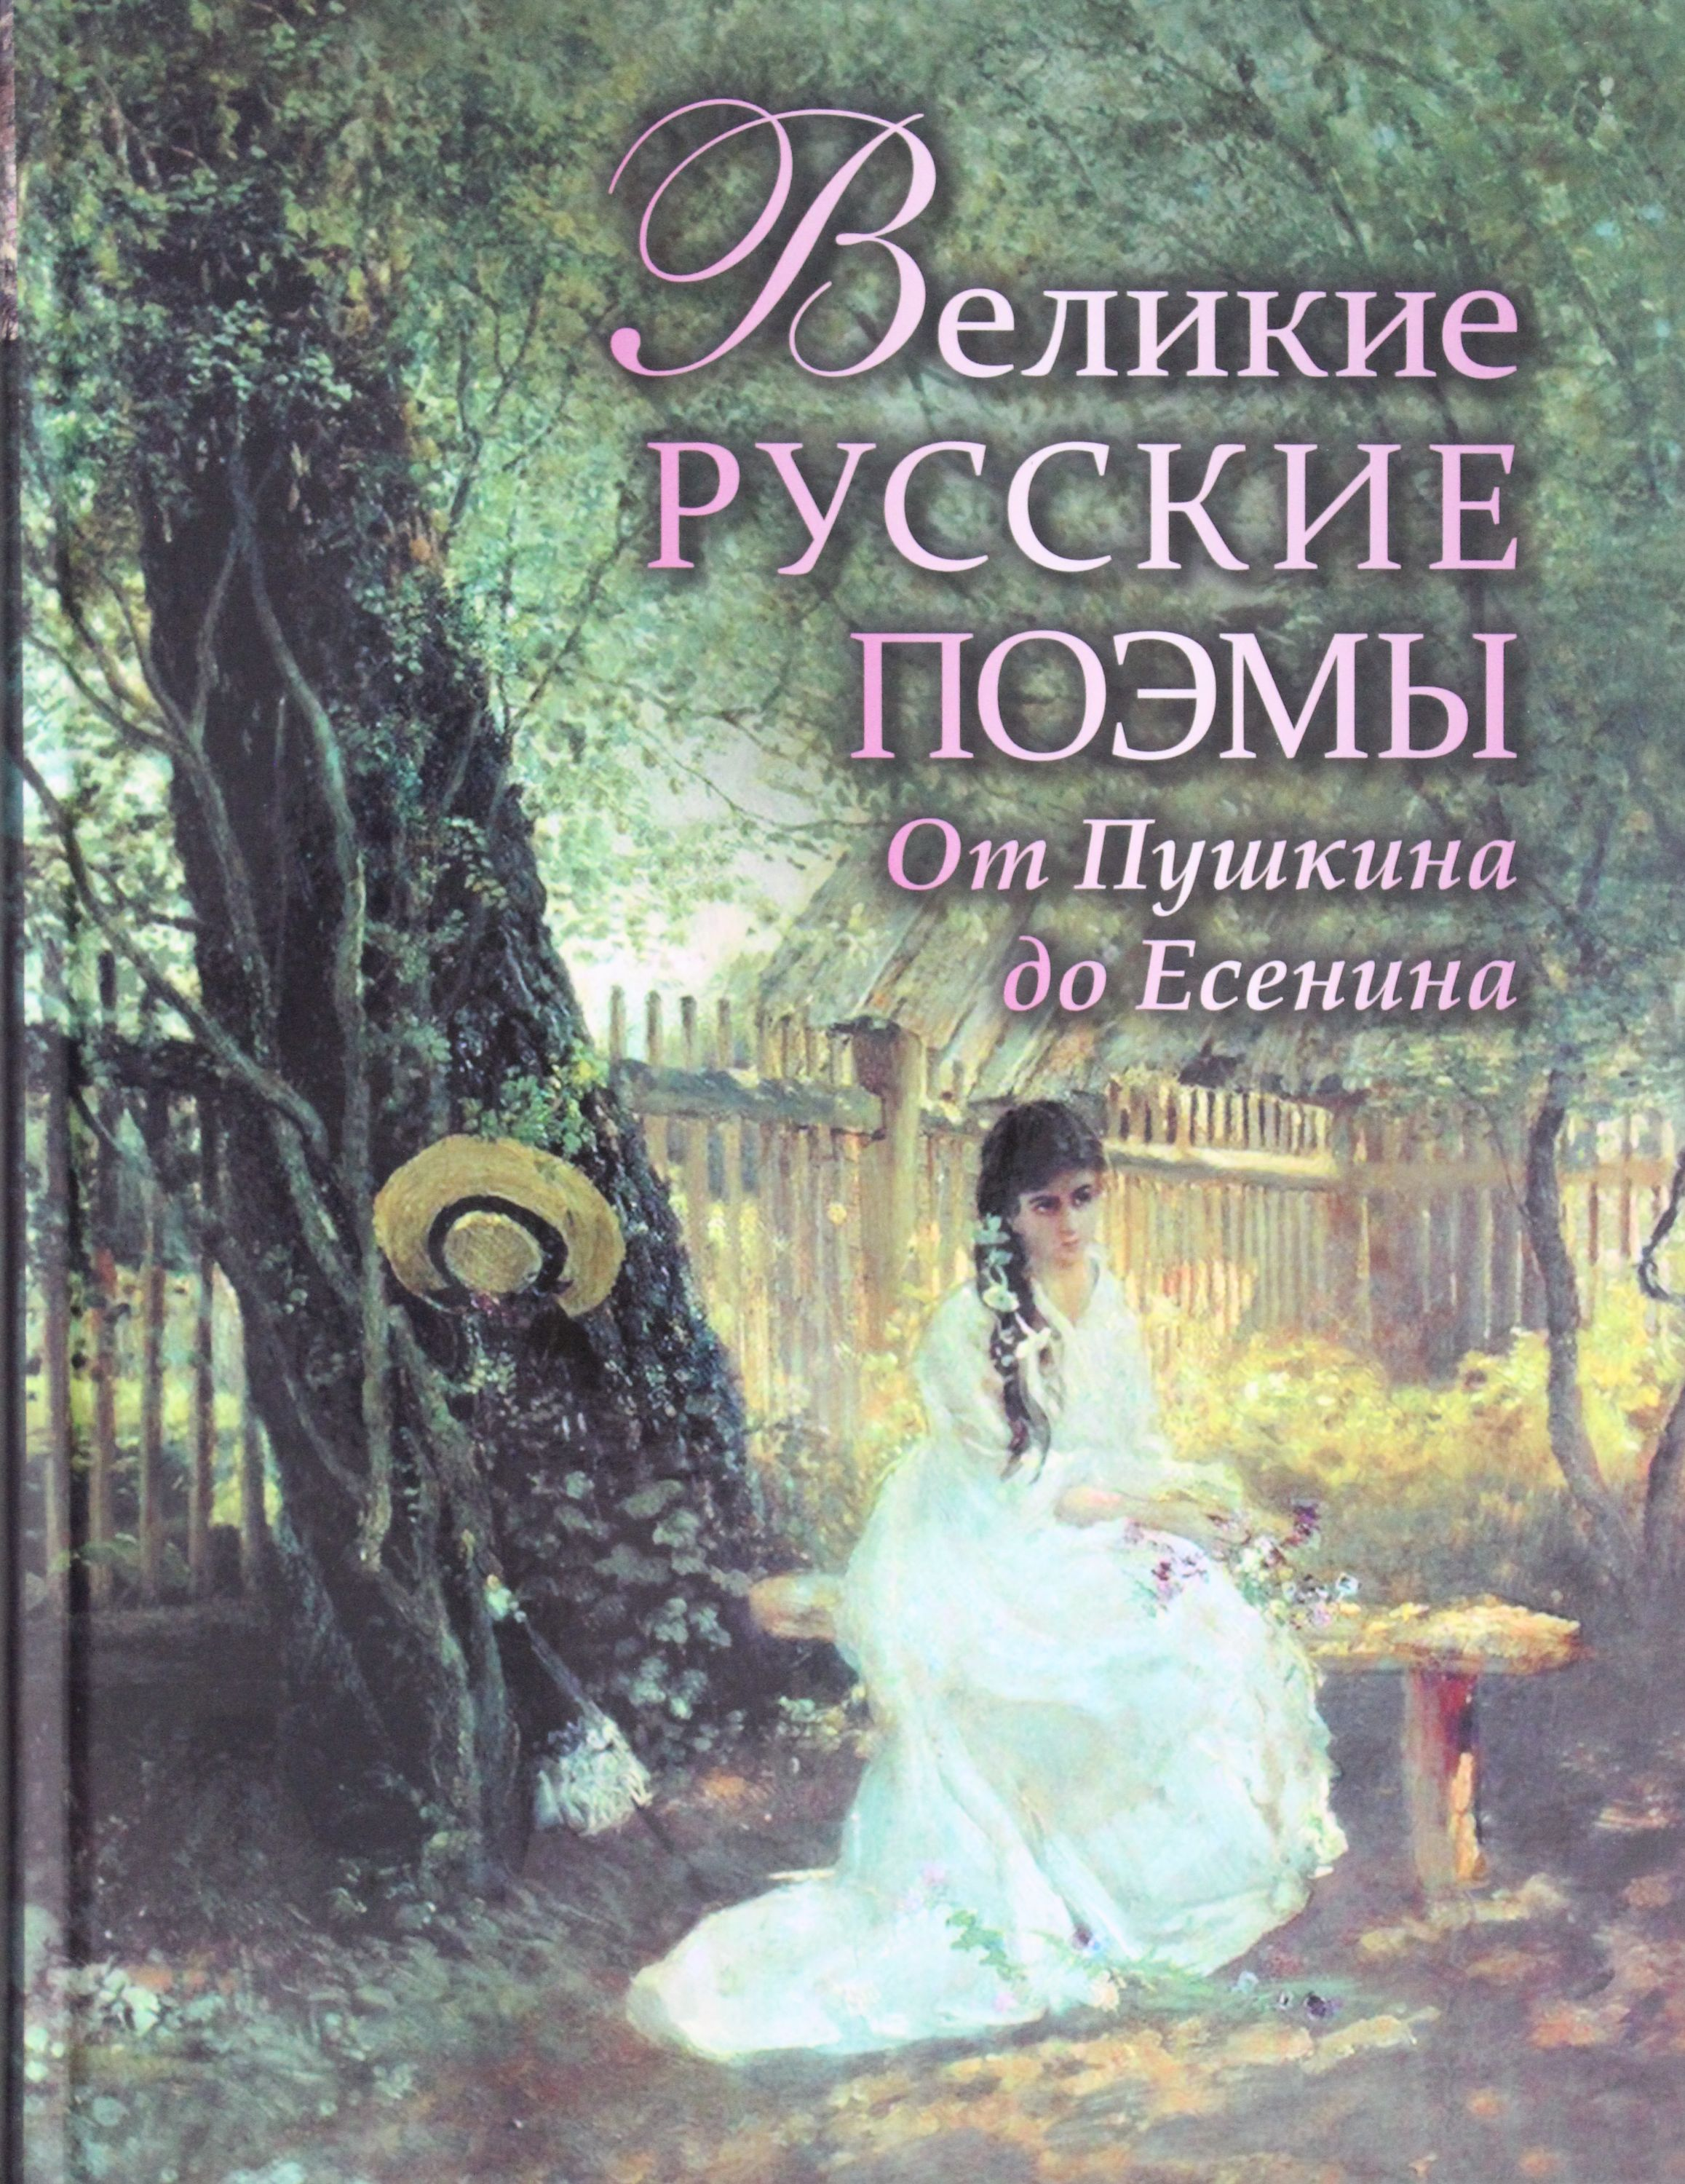 Velikie russkie poemy. Ot Pushkina do Esenina.